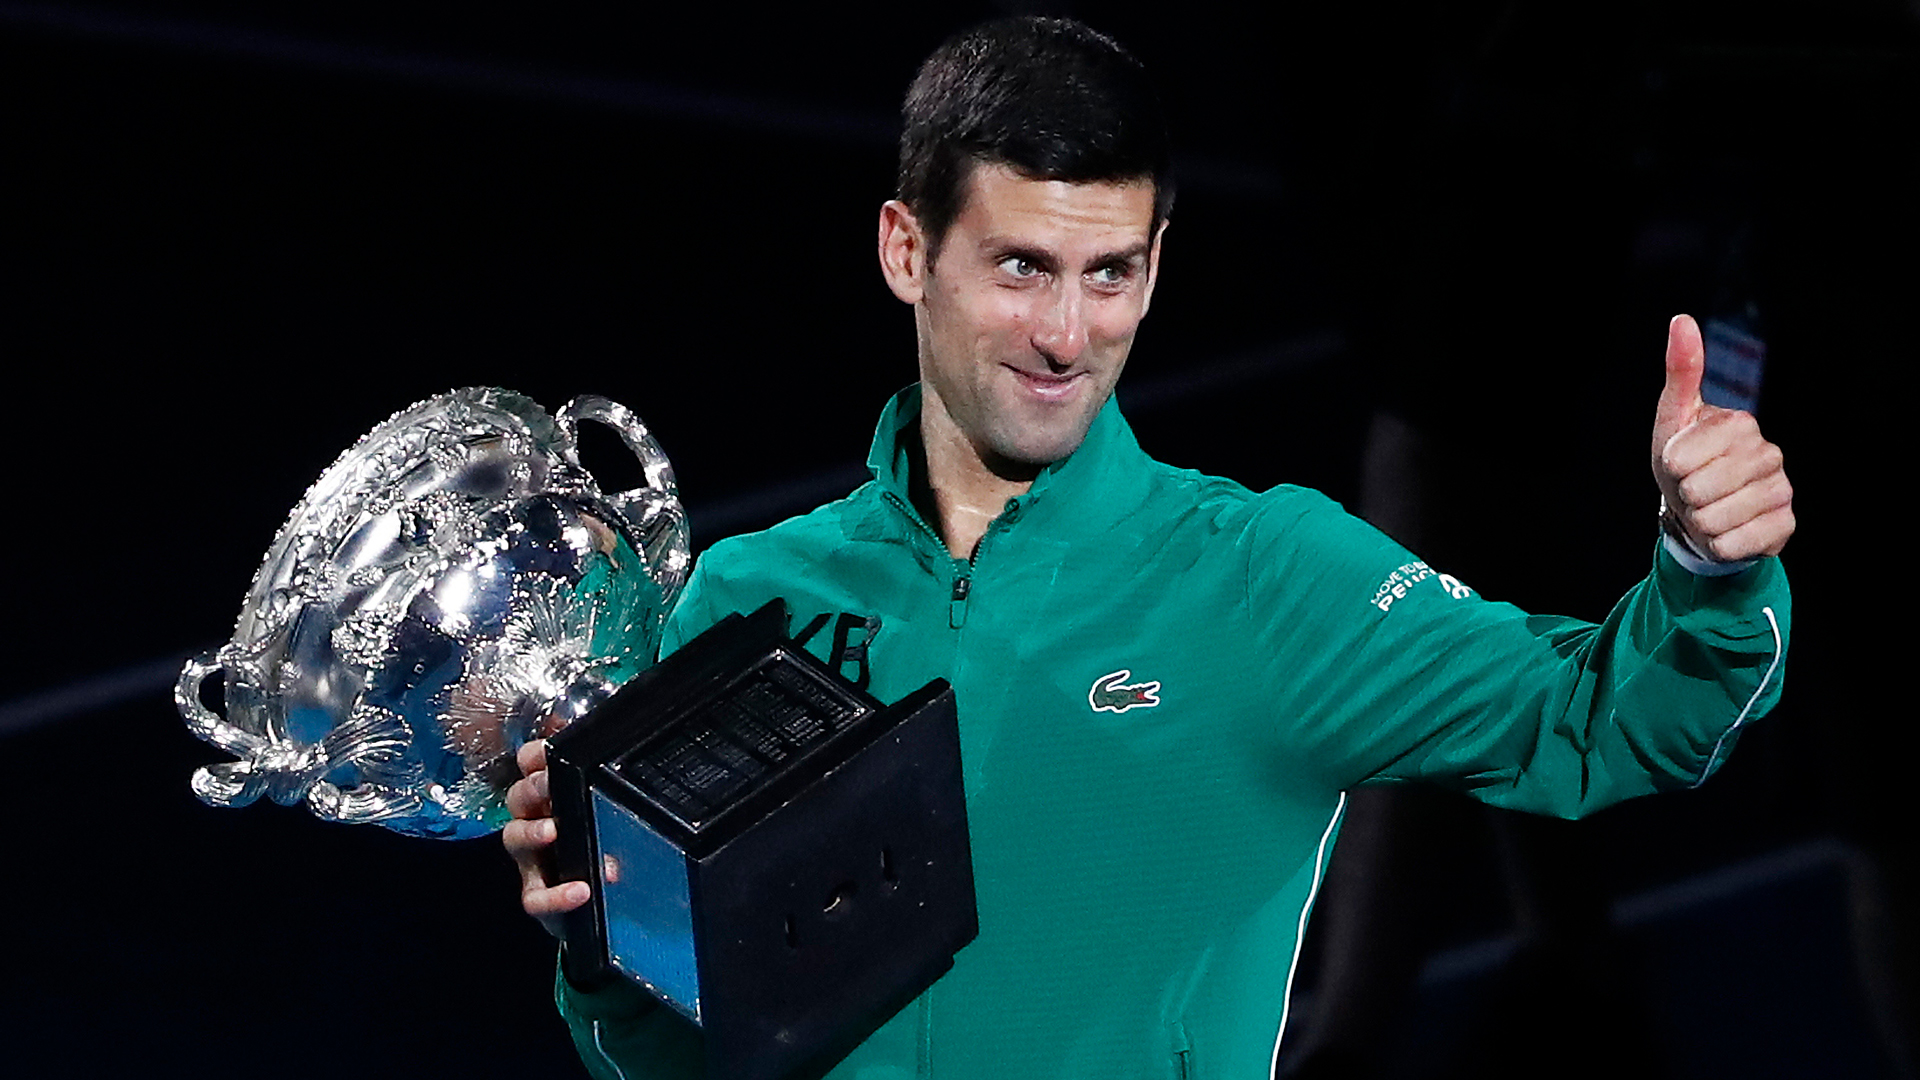 Australian Open 2020: Djokovic was 'on the brink of losing' to Thiem as he dealt with dehydration